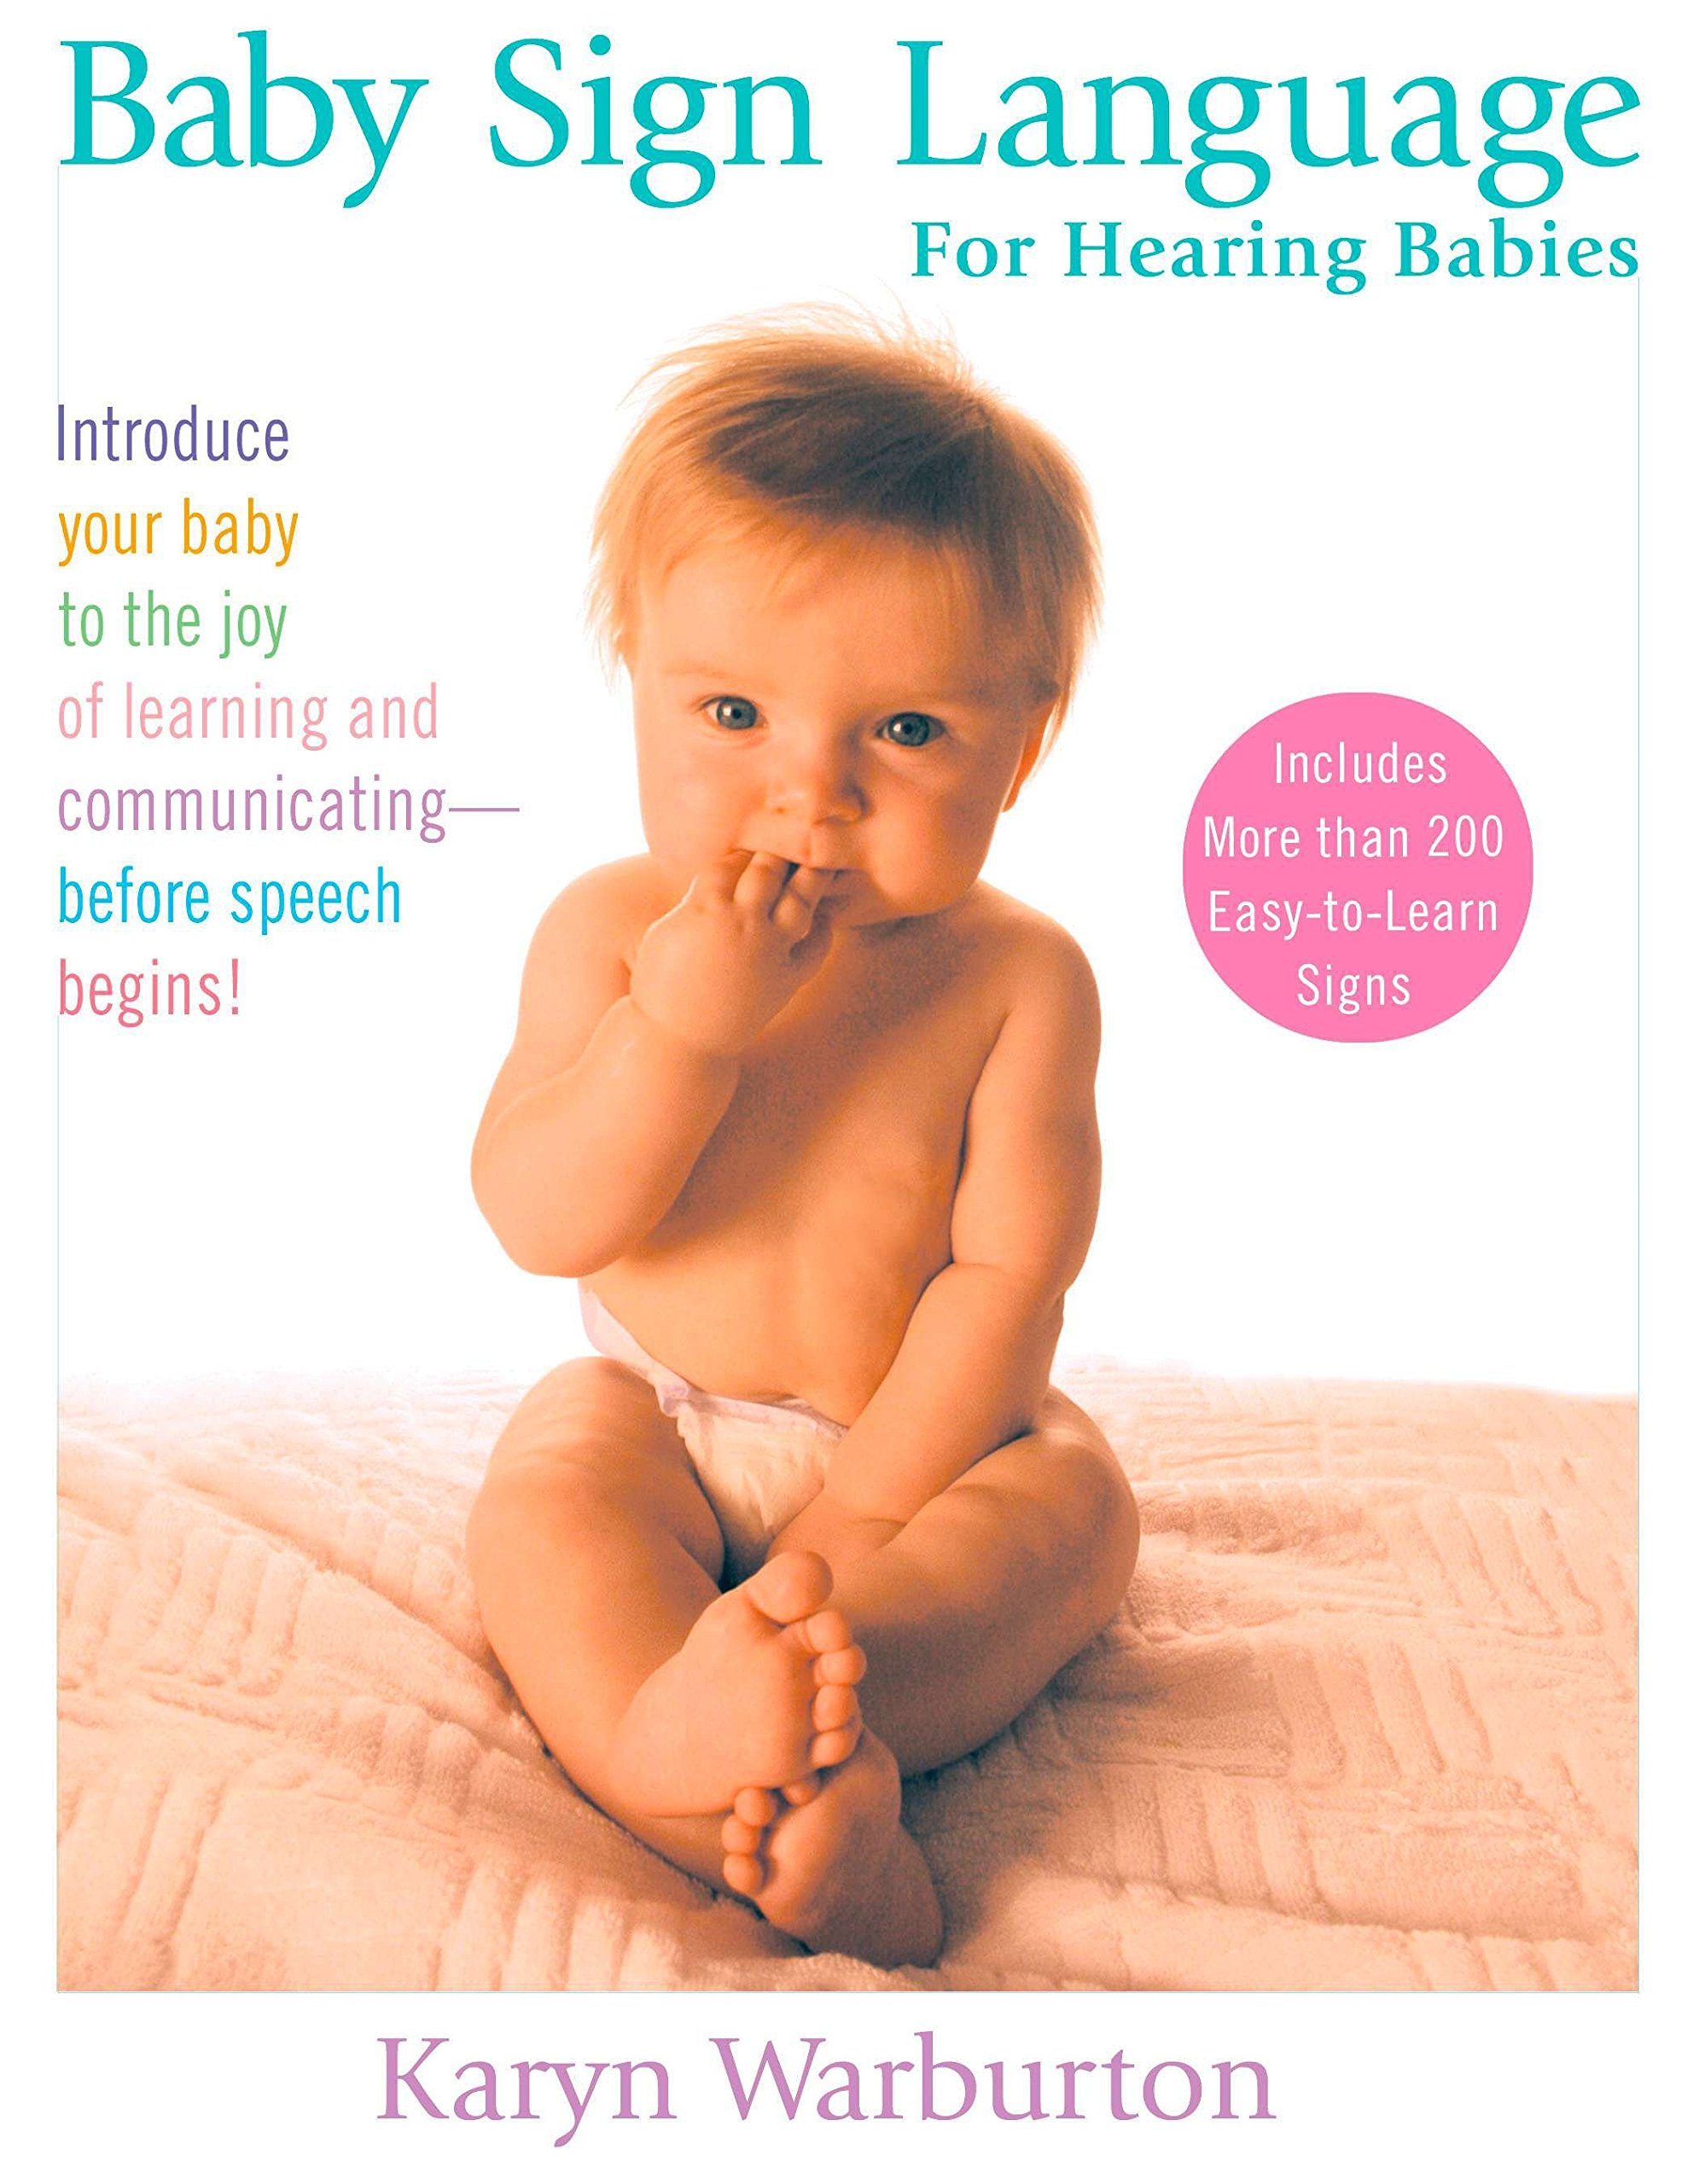 Baby Sign Language: For Hearing Babies